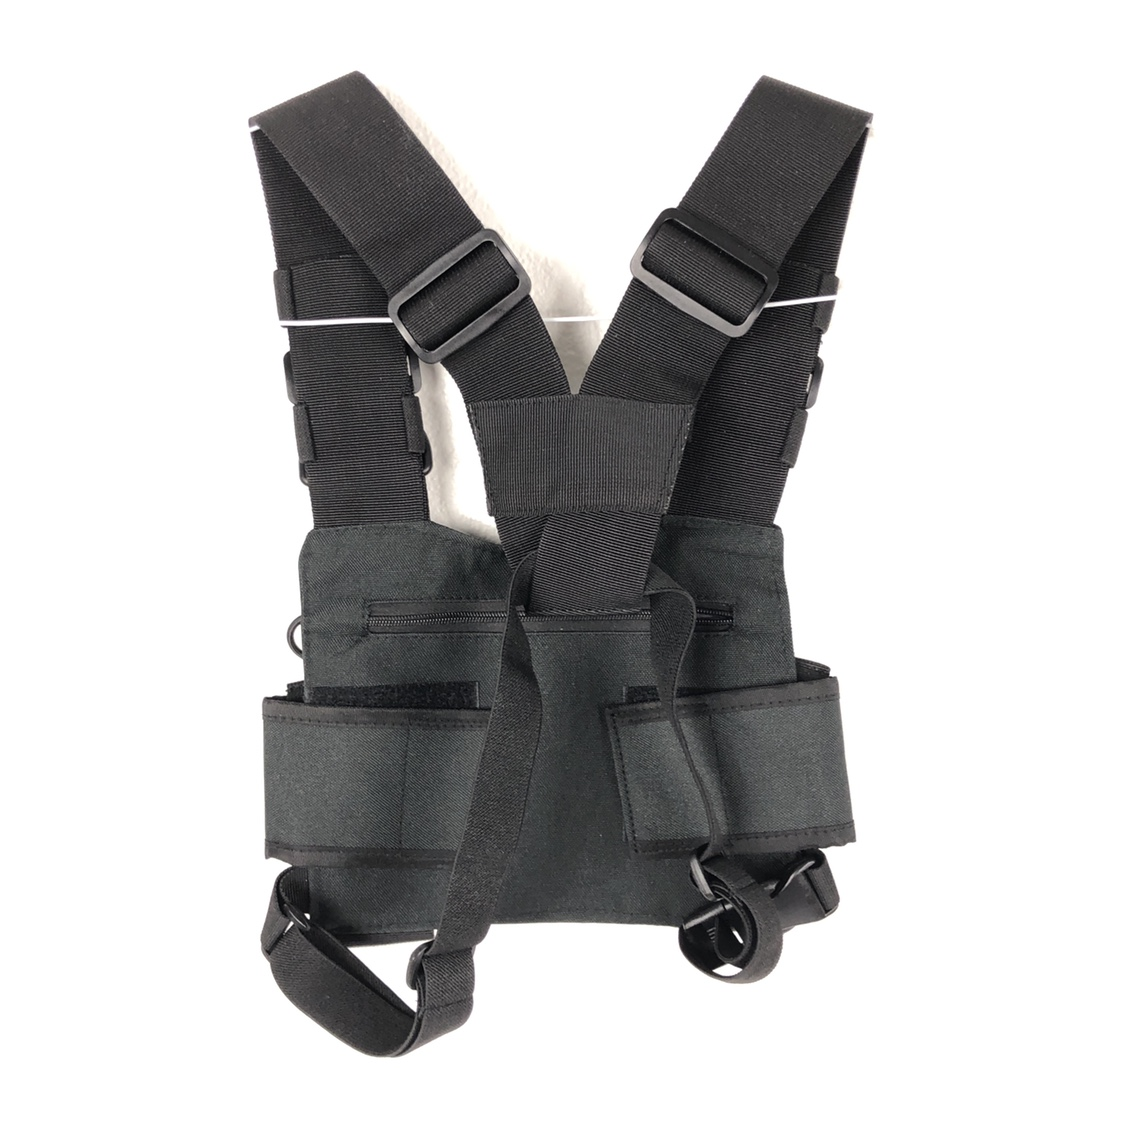 Bondage Tactical Vest Gun Holster Chest Rig Black    - Depop